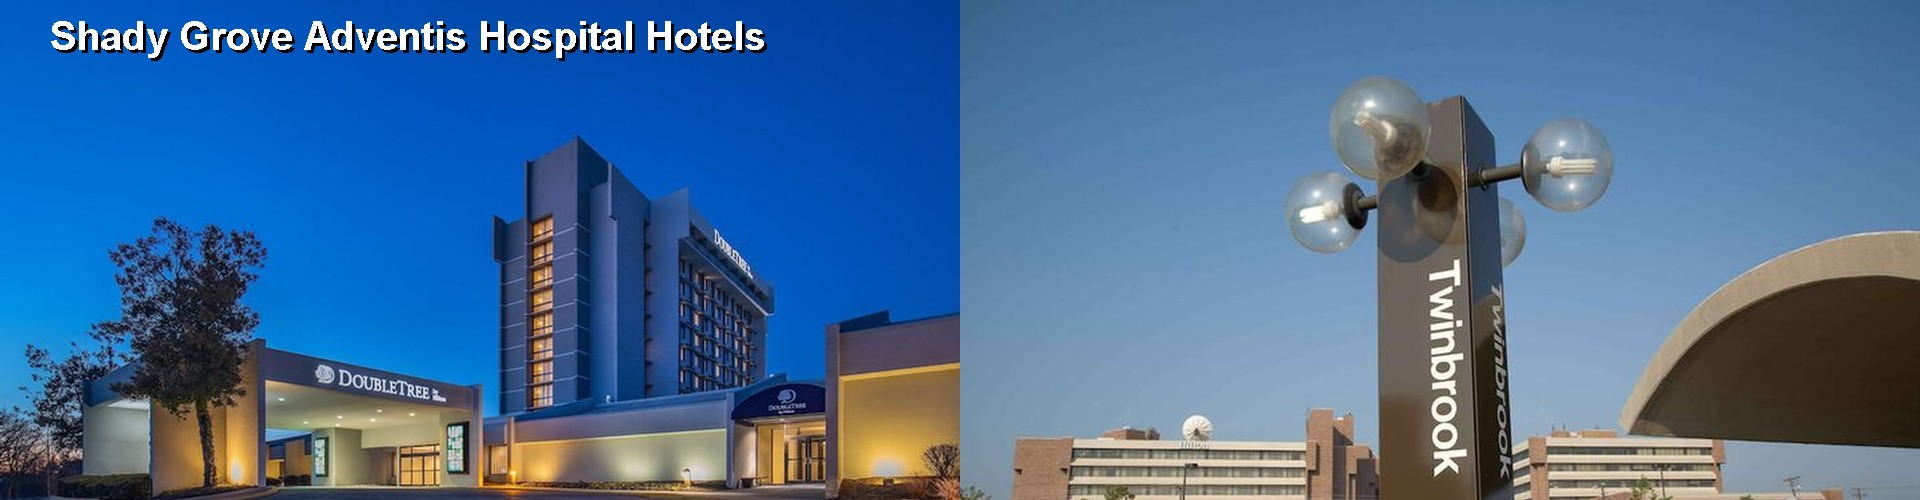 5 Best Hotels near Shady Grove Adventis Hospital